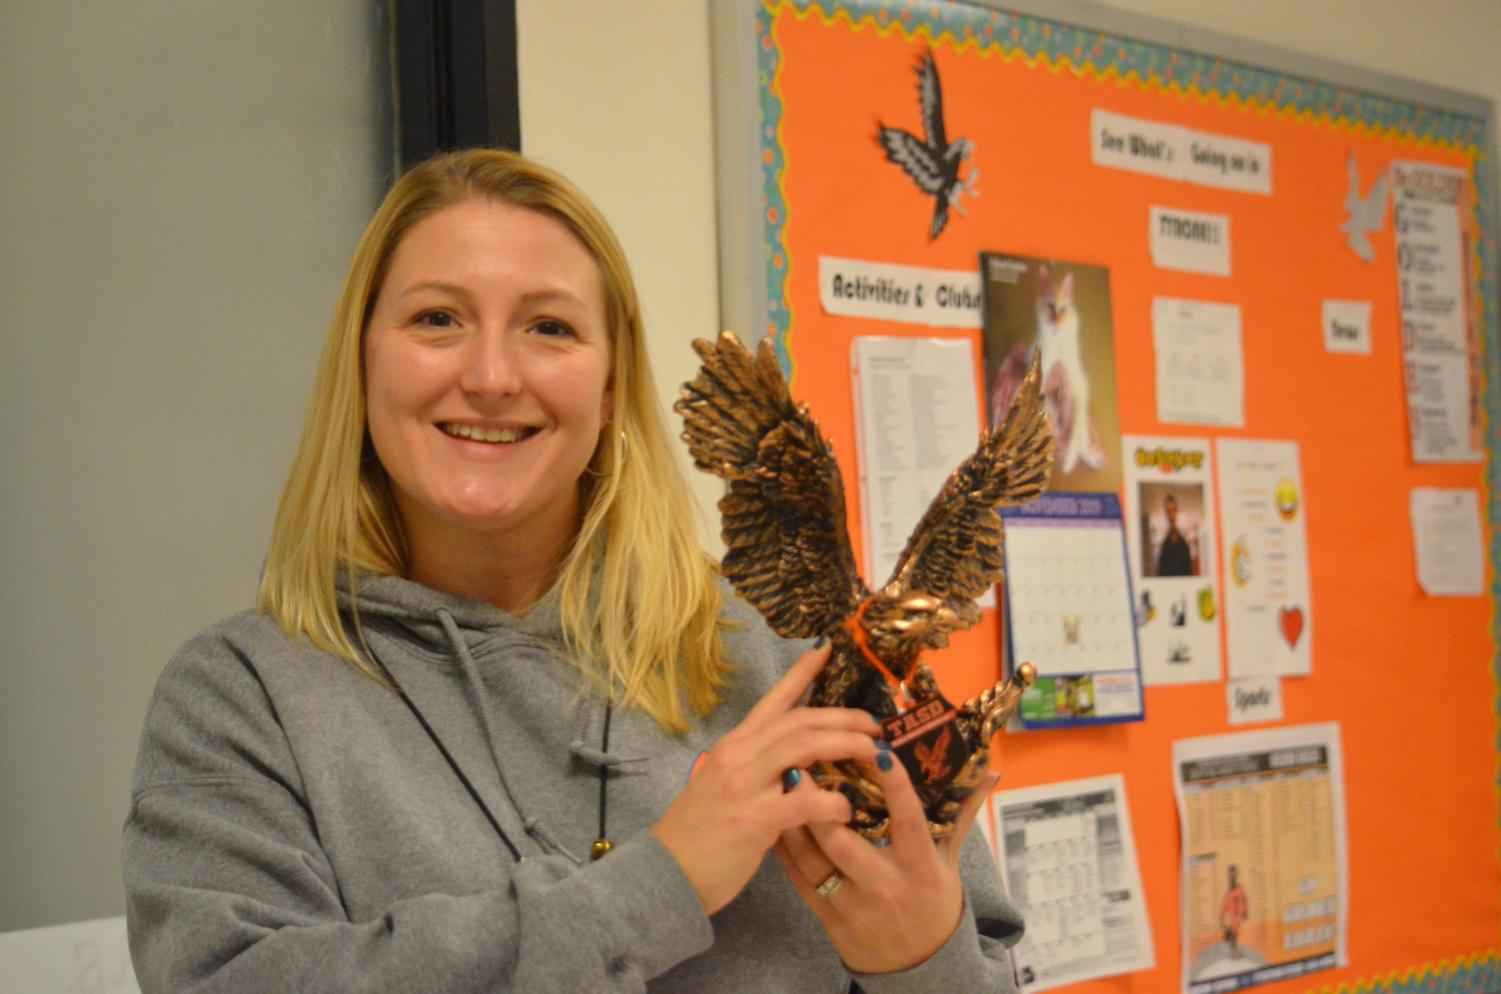 Learning support teacher Jessica Ellenberger  always goes above and beyond to help her students and coworkers.  She was nominated for the Golden Eagle award by Candy Eckles.